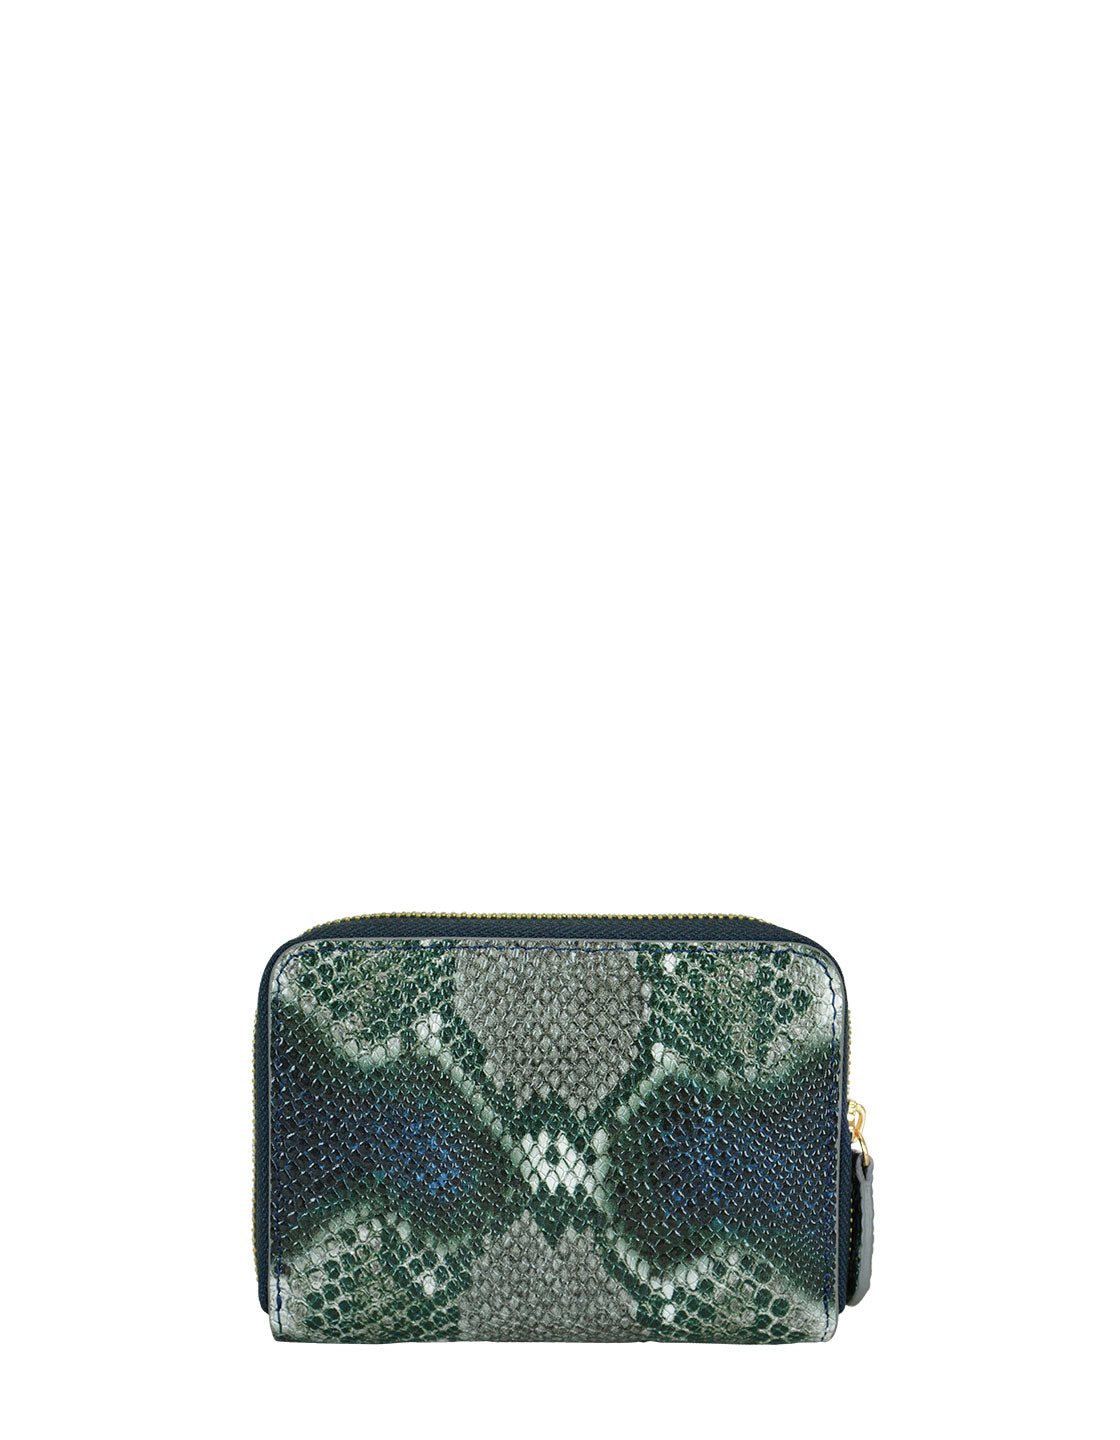 Money Maker Mini Wallet in Green Multi Python